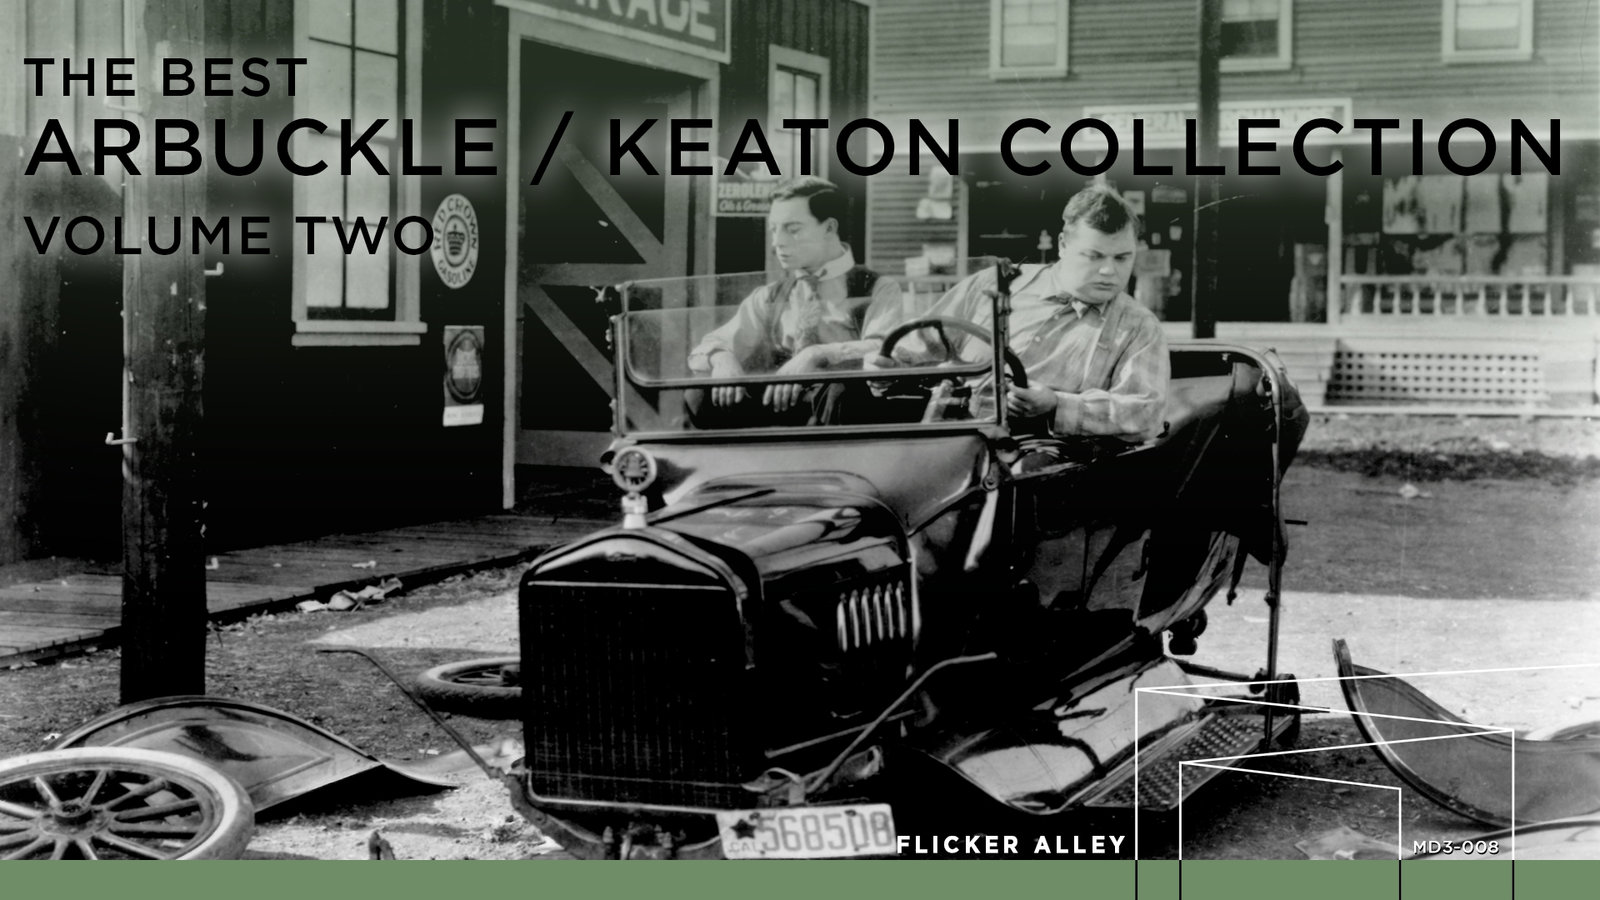 The Best Arbuckle/Keaton Collection Volume Two